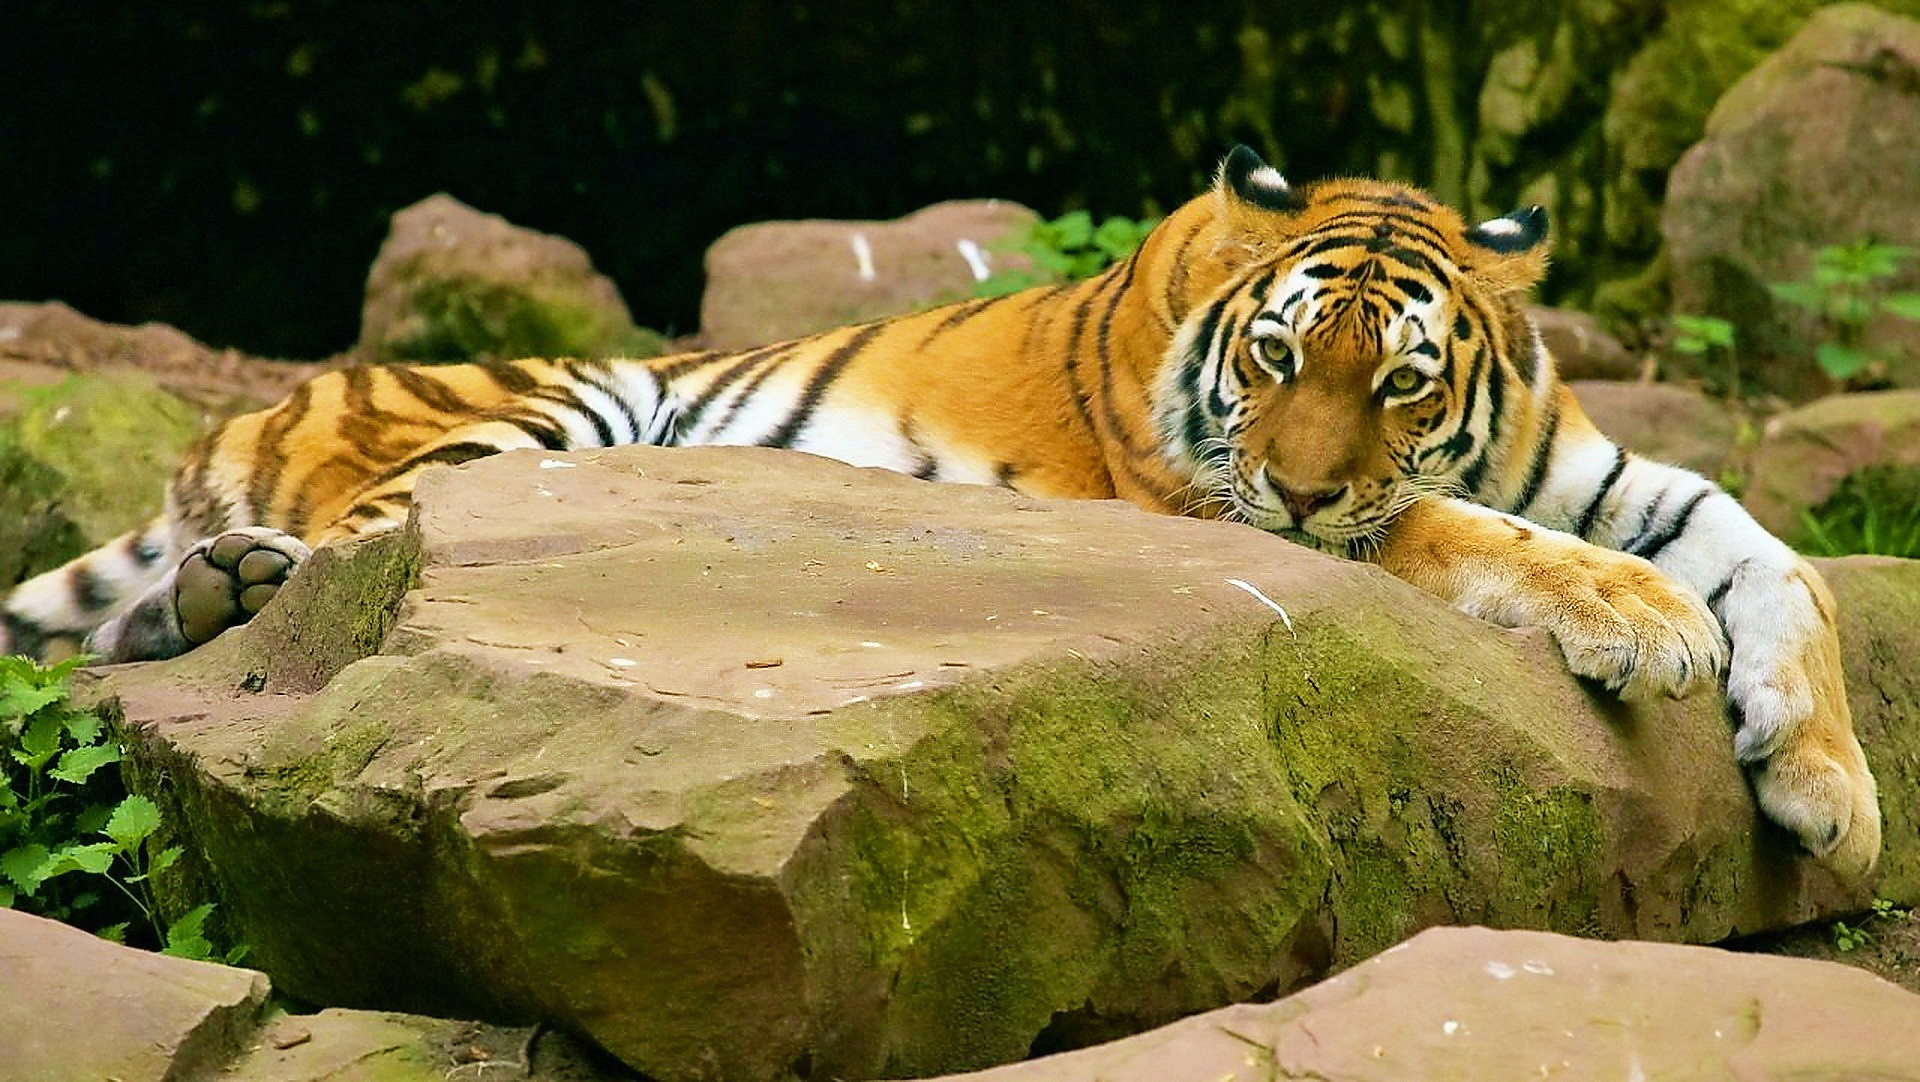 The terrible tiger is resting after the hunt